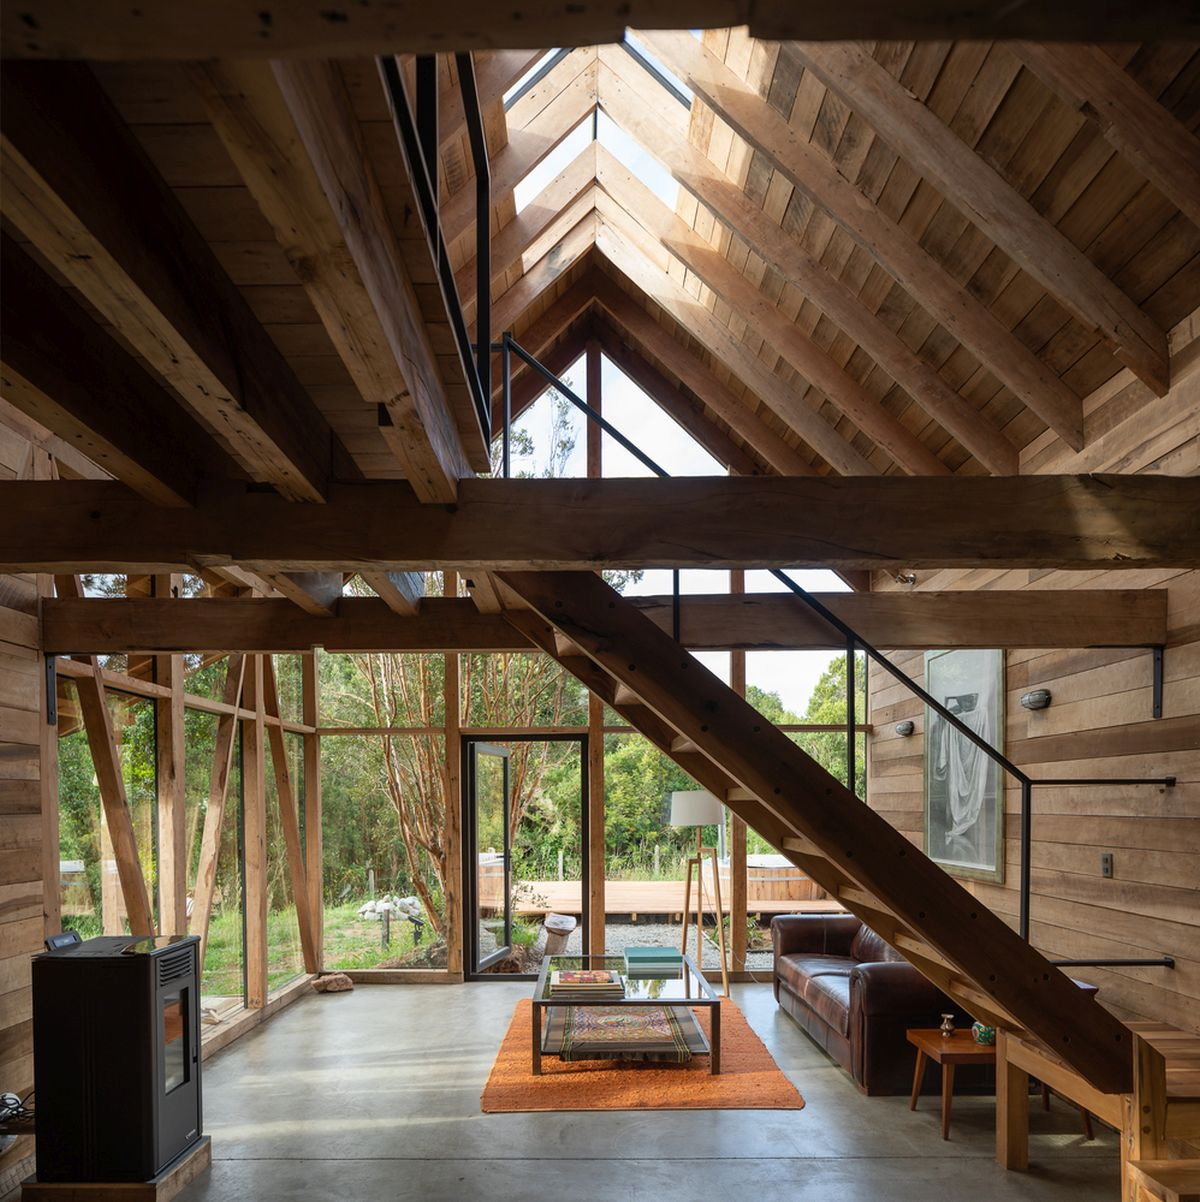 Skylights right at the center of the roof being more sunlight into the living spaces below